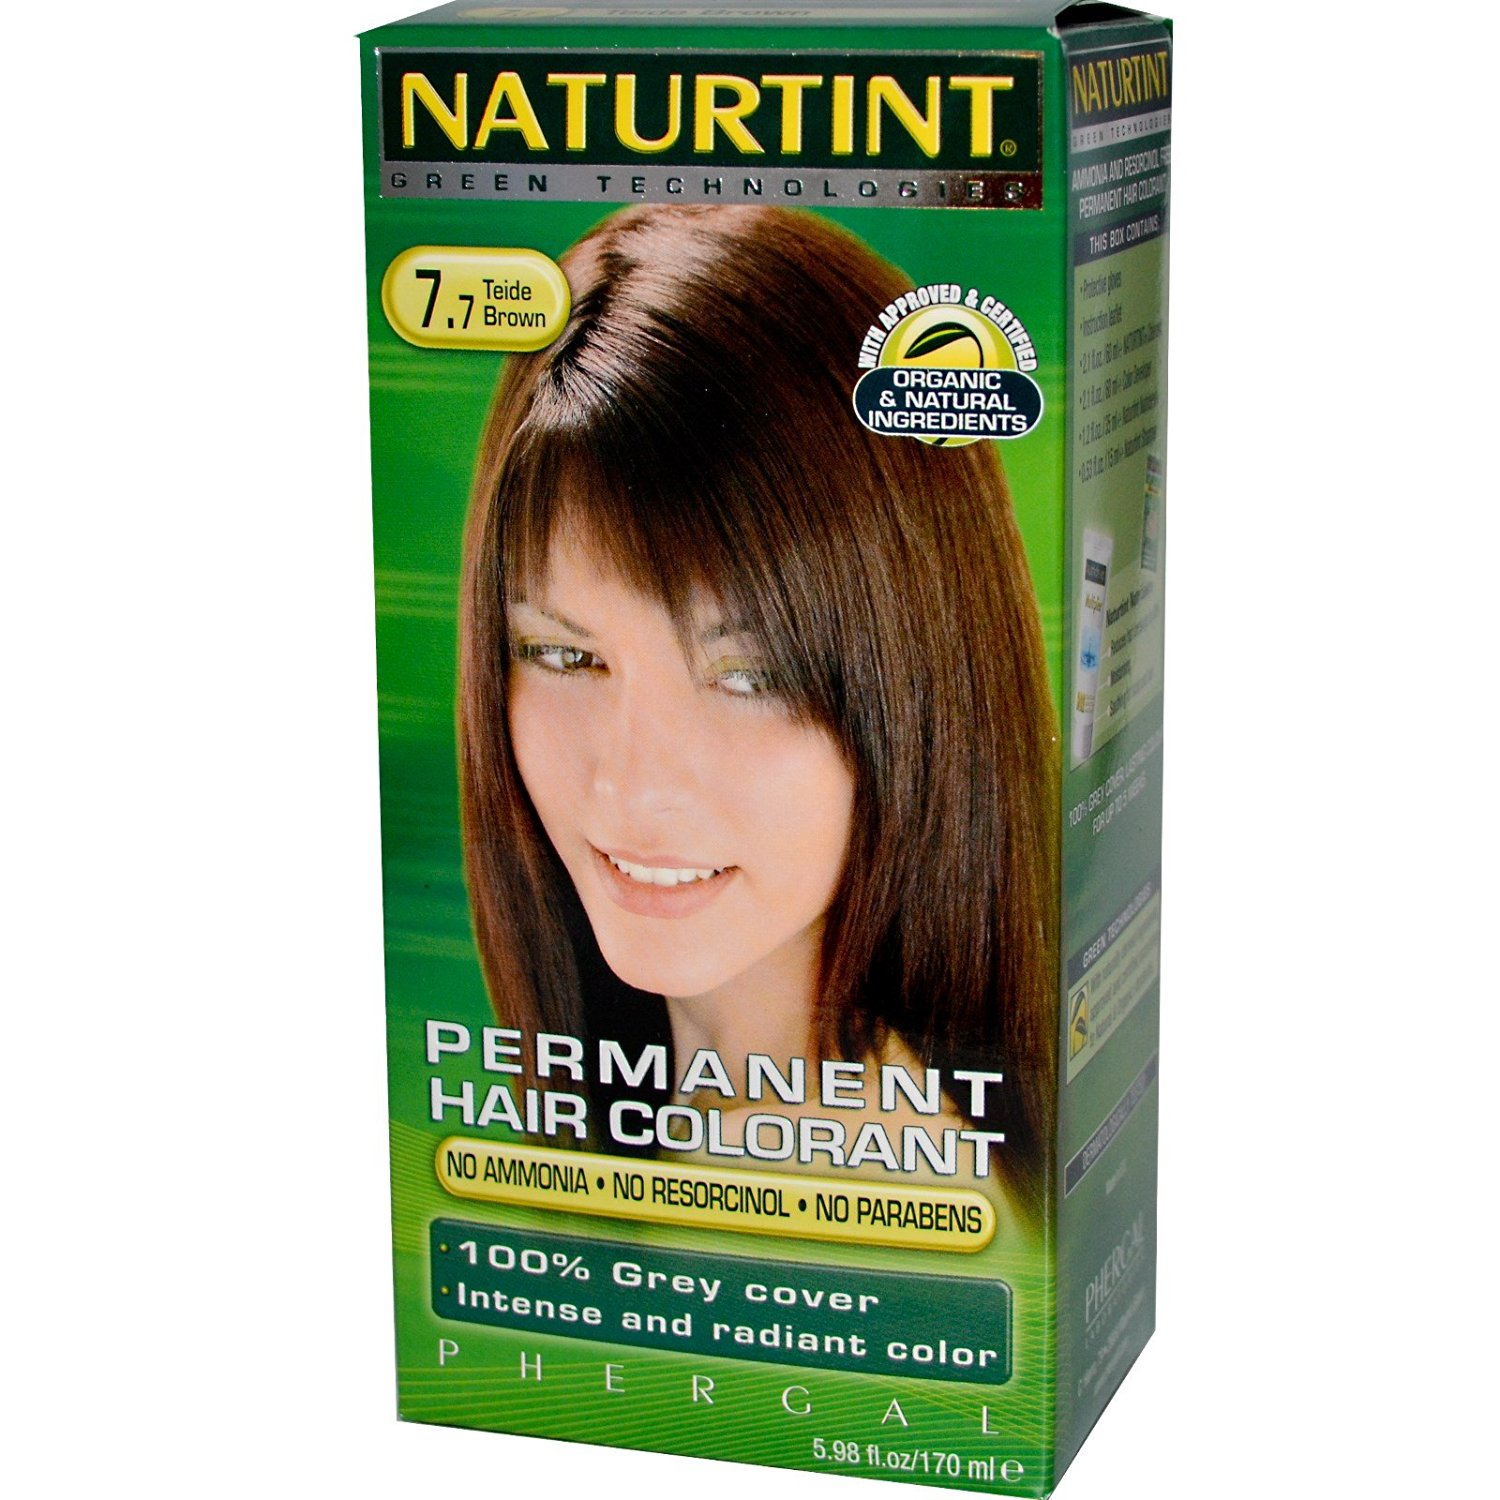 Cheap Naturtint Hair Color Find Naturtint Hair Color Deals On Line